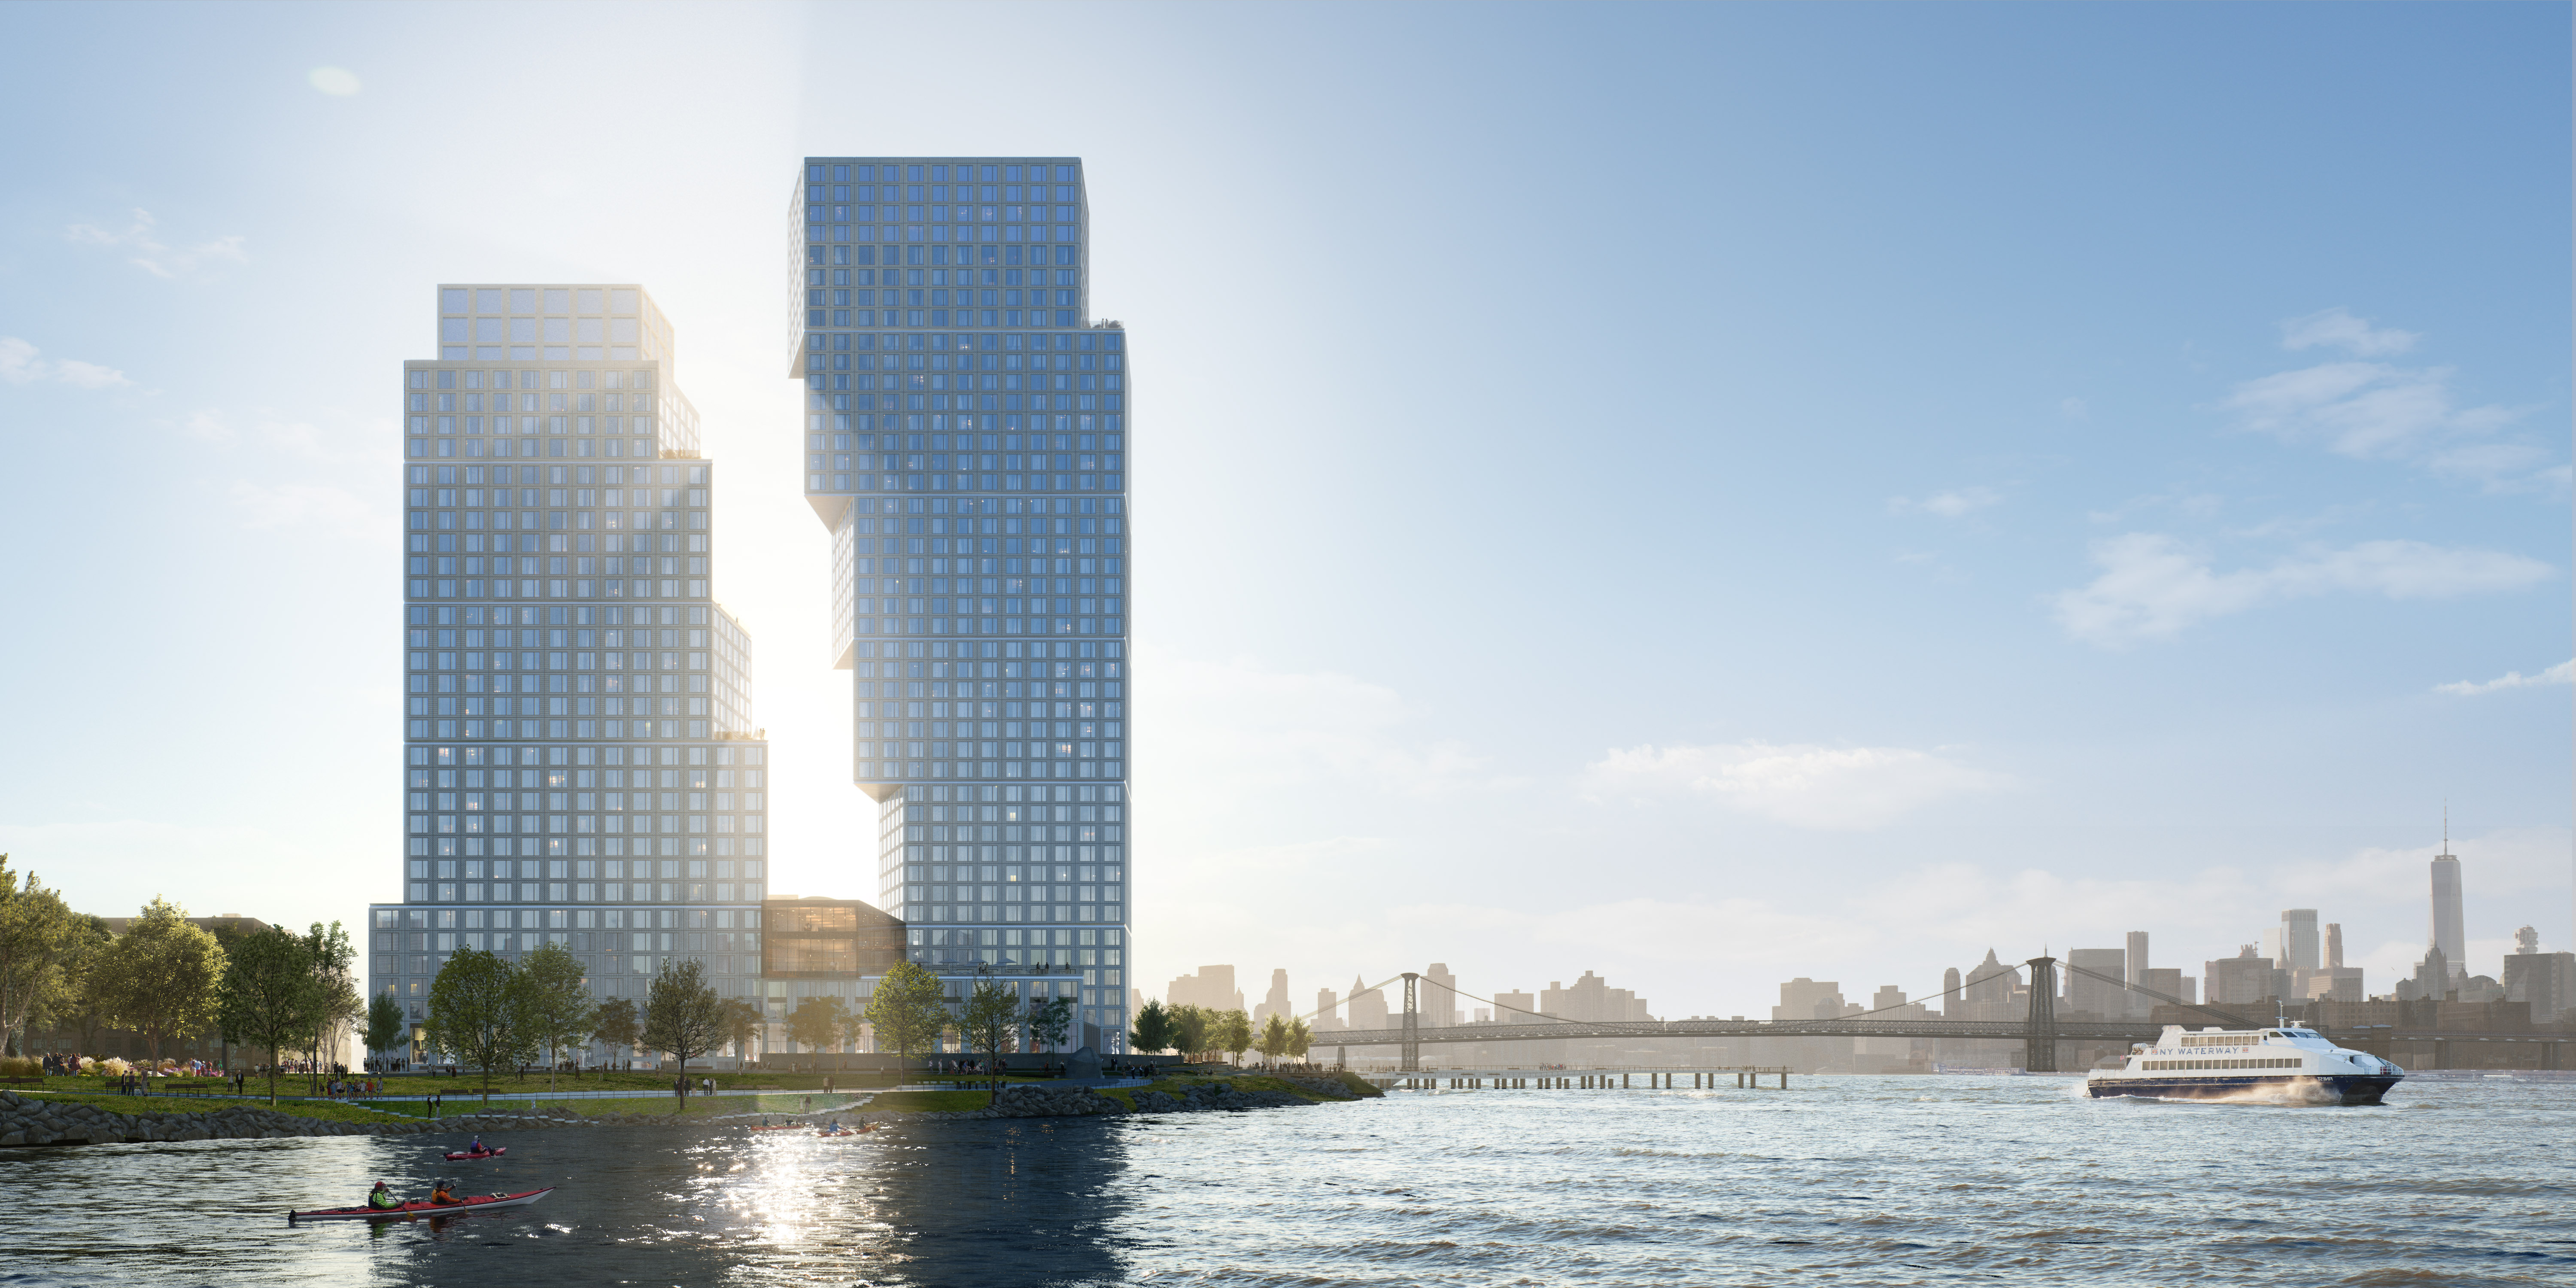 Rem Koolhaas's OMA will bring 745 rentals to Greenpoint waterfront